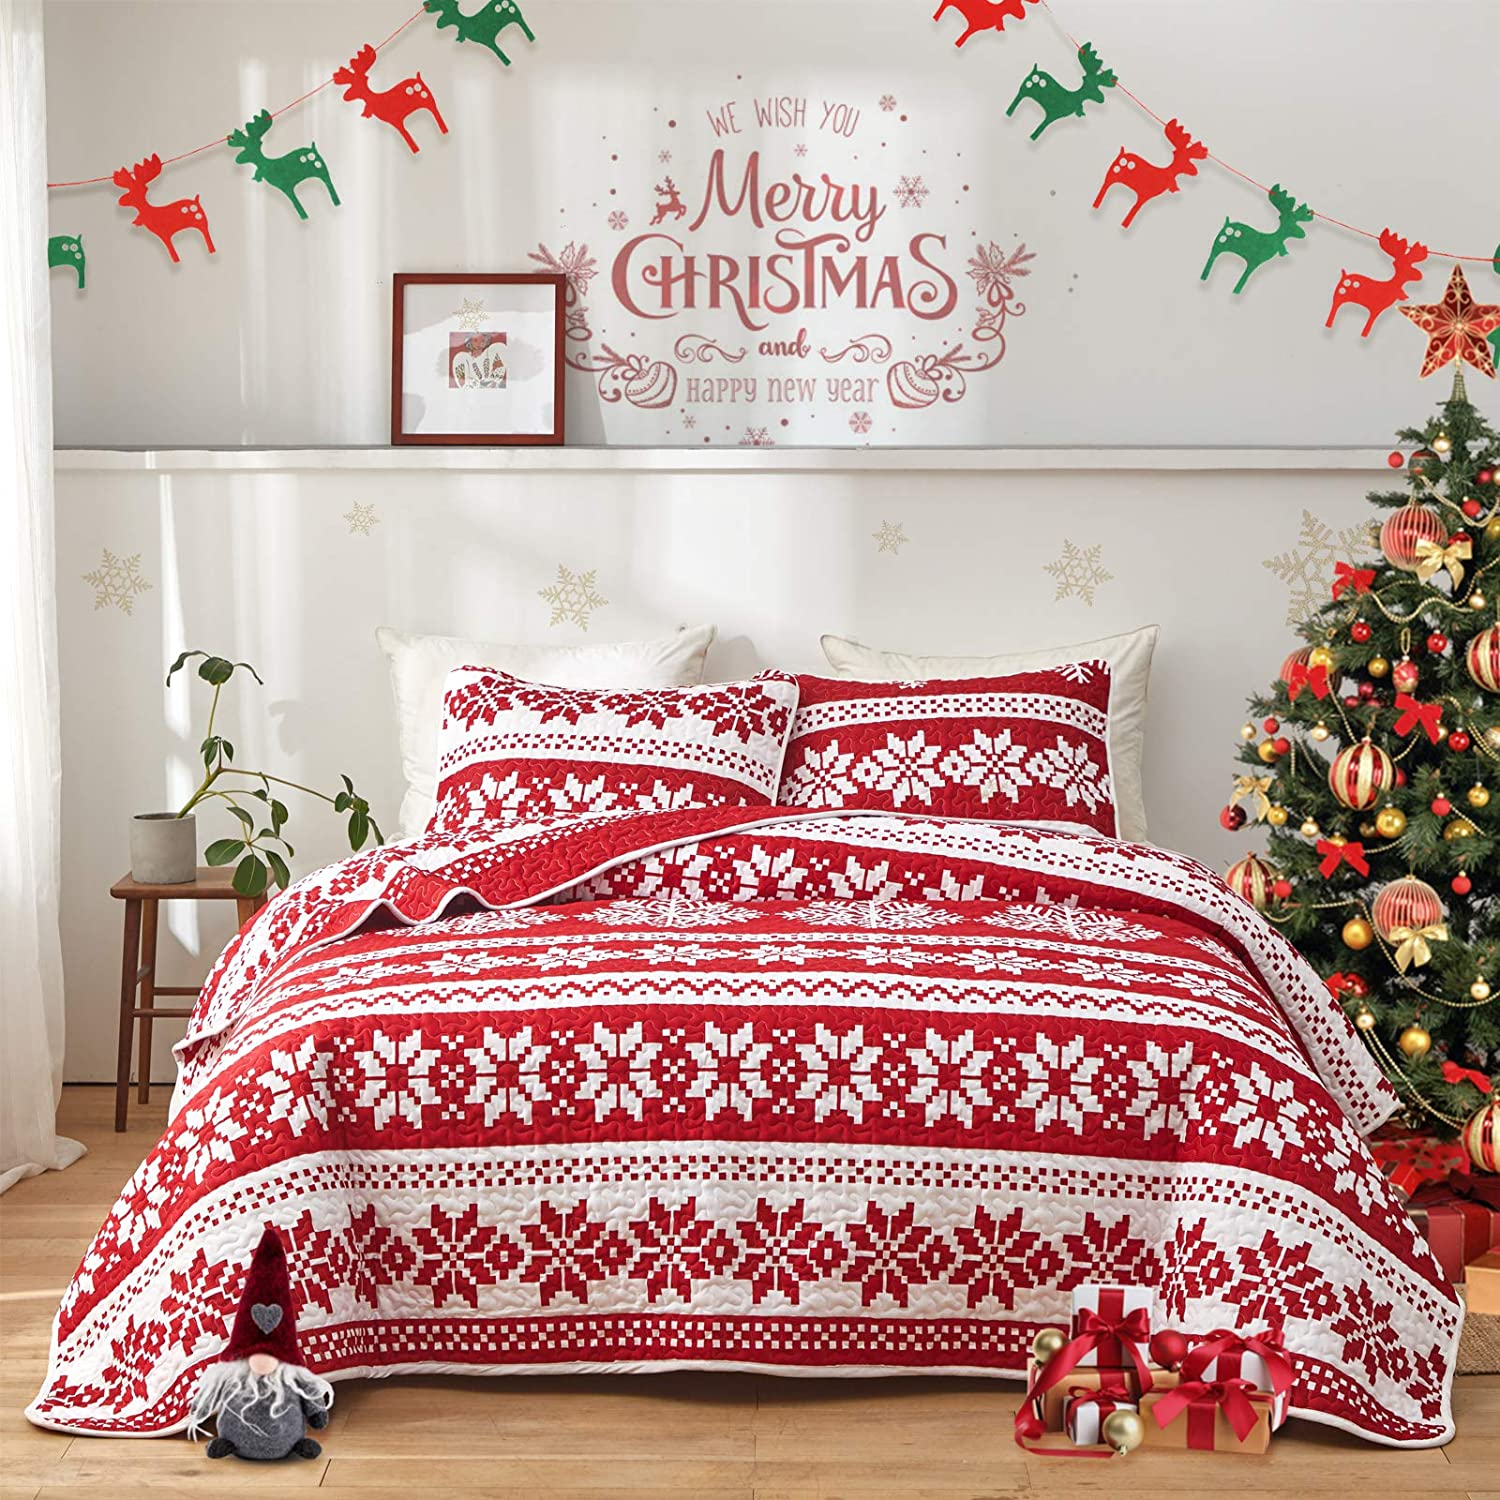 FlySheep Christmas Quilt Set Soft Microfiber Holiday Lightweight Bedspread Coverlet Bedding Set - Red White & Little Pink Snowflake Printed Queen